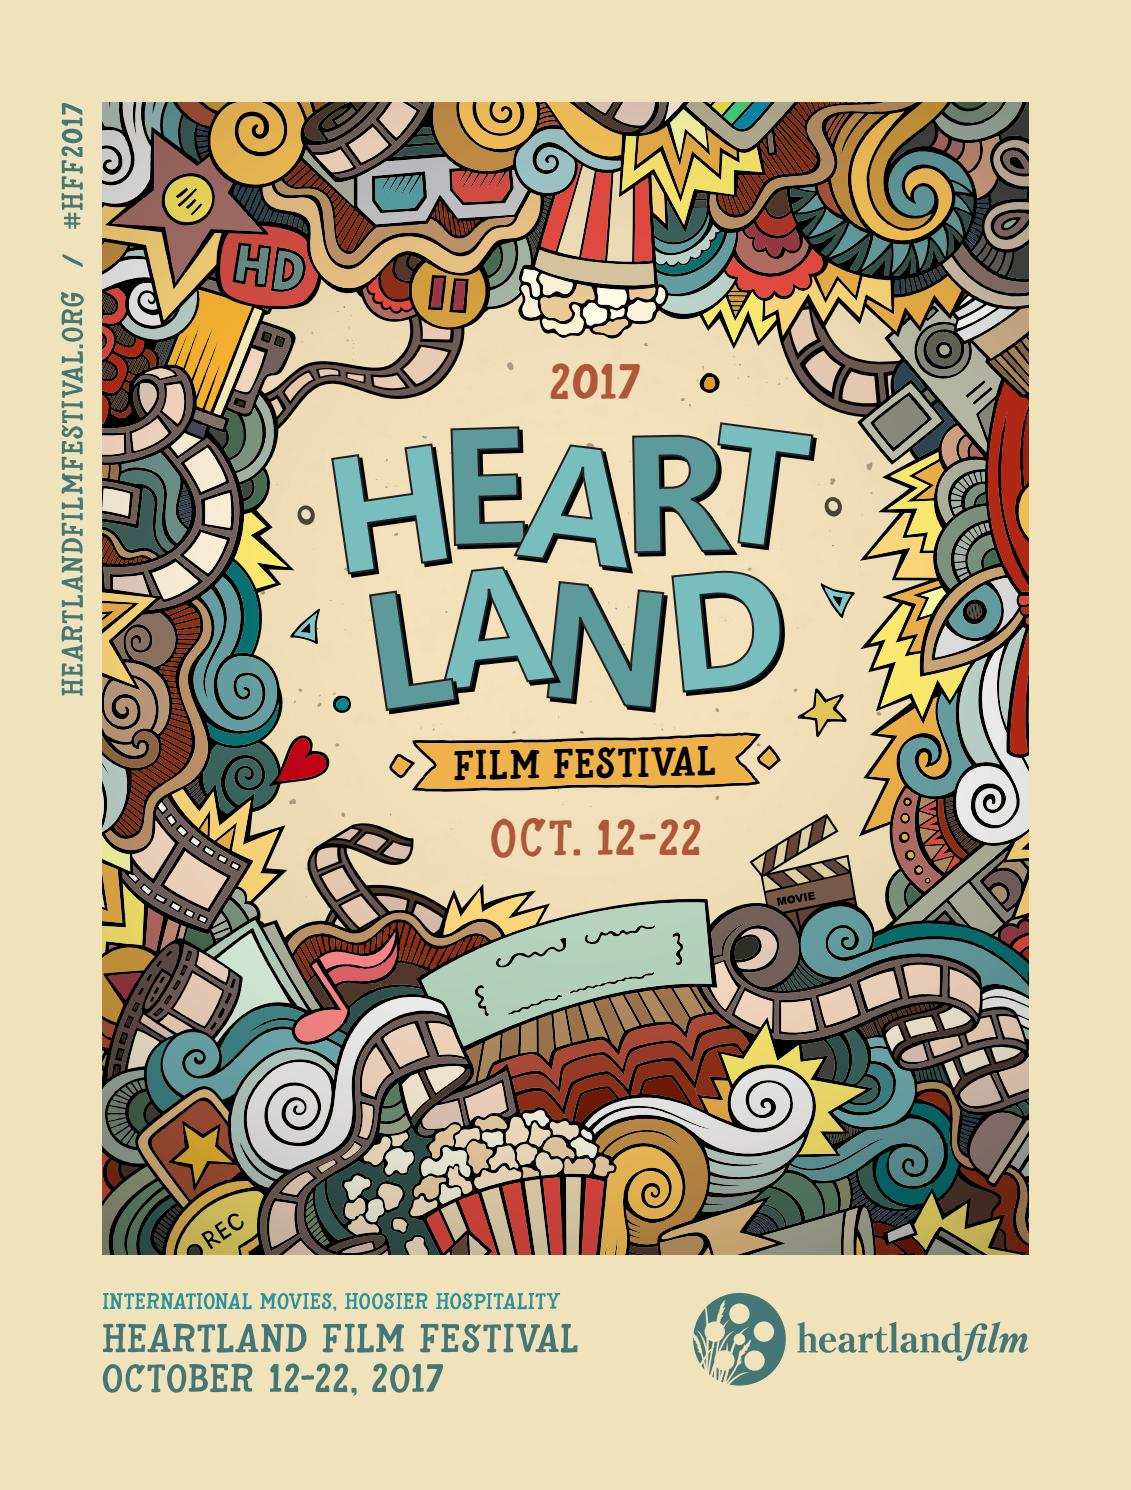 Festival Heartland Issuu By Heartlandfilm Film 2017 Guidebook I2D9WYHE